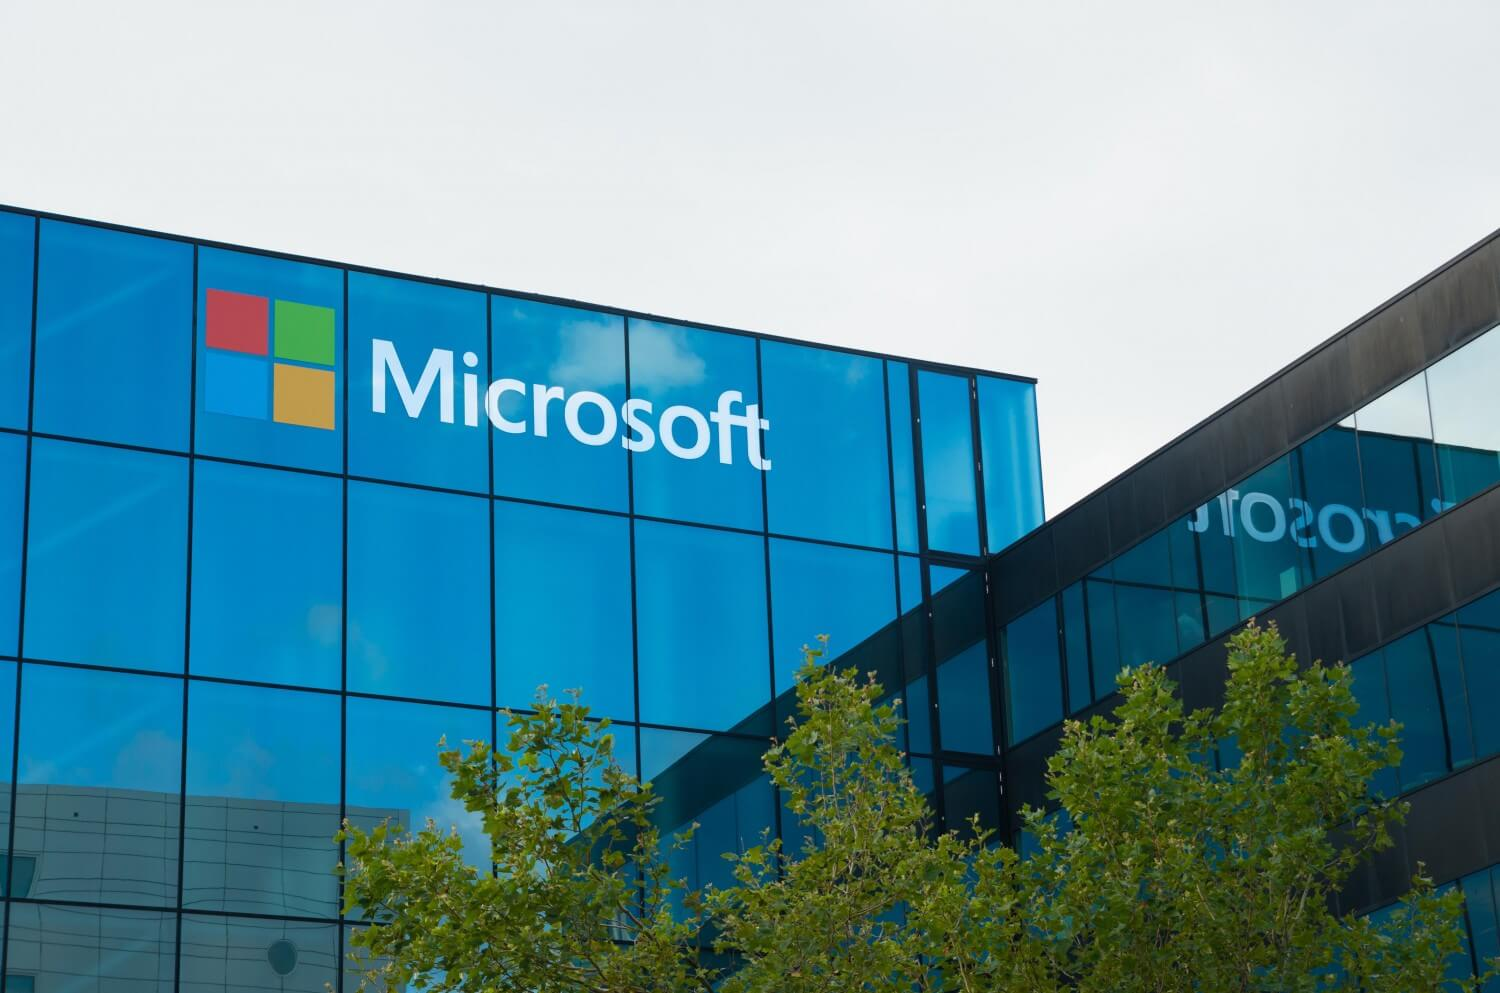 Microsoft posts $125.8 billion revenue in its record fiscal year for 2019